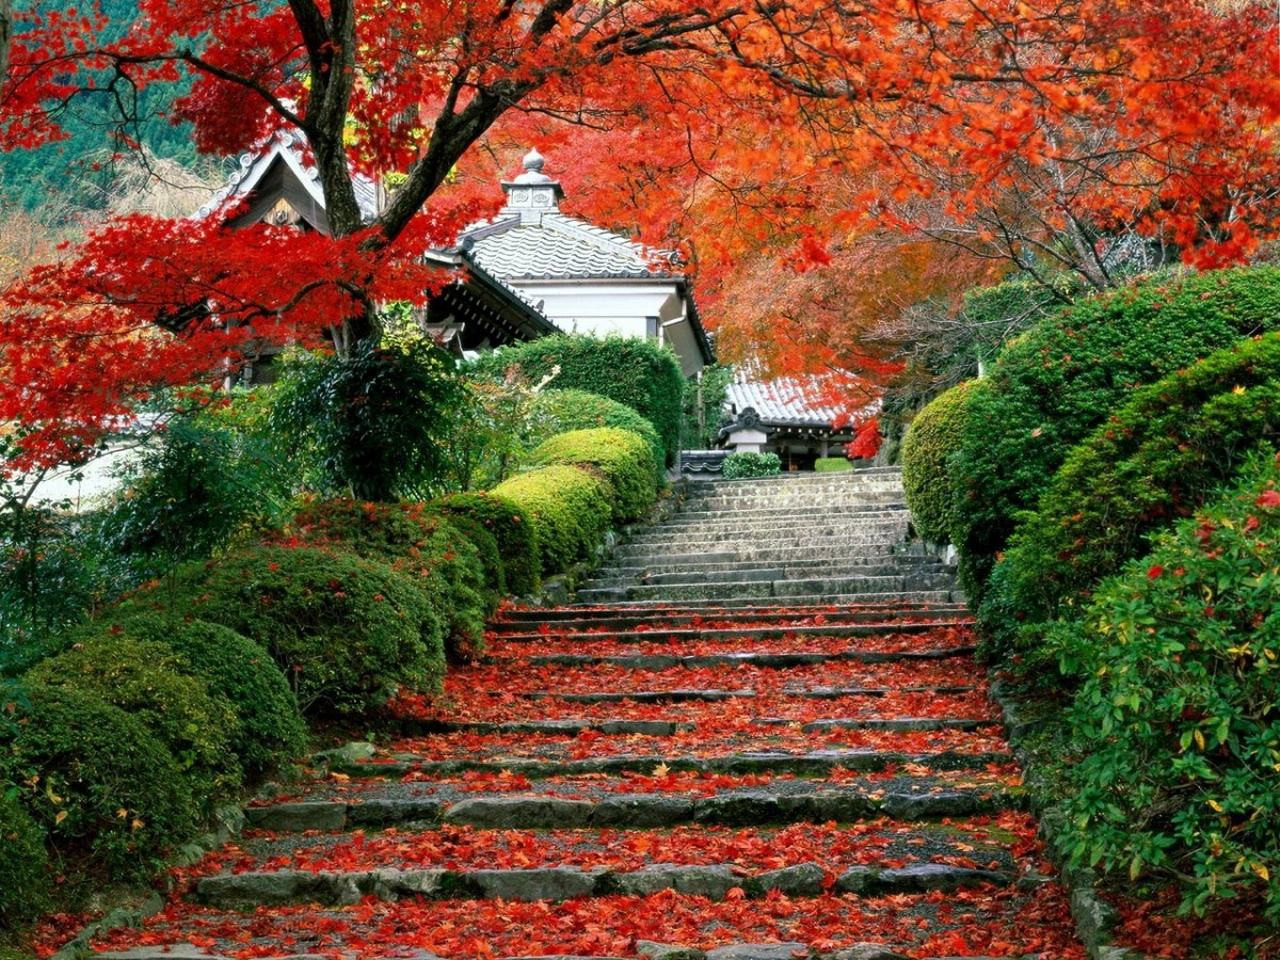 32281 download wallpaper Landscape, Autumn, Leaves, Asia screensavers and pictures for free